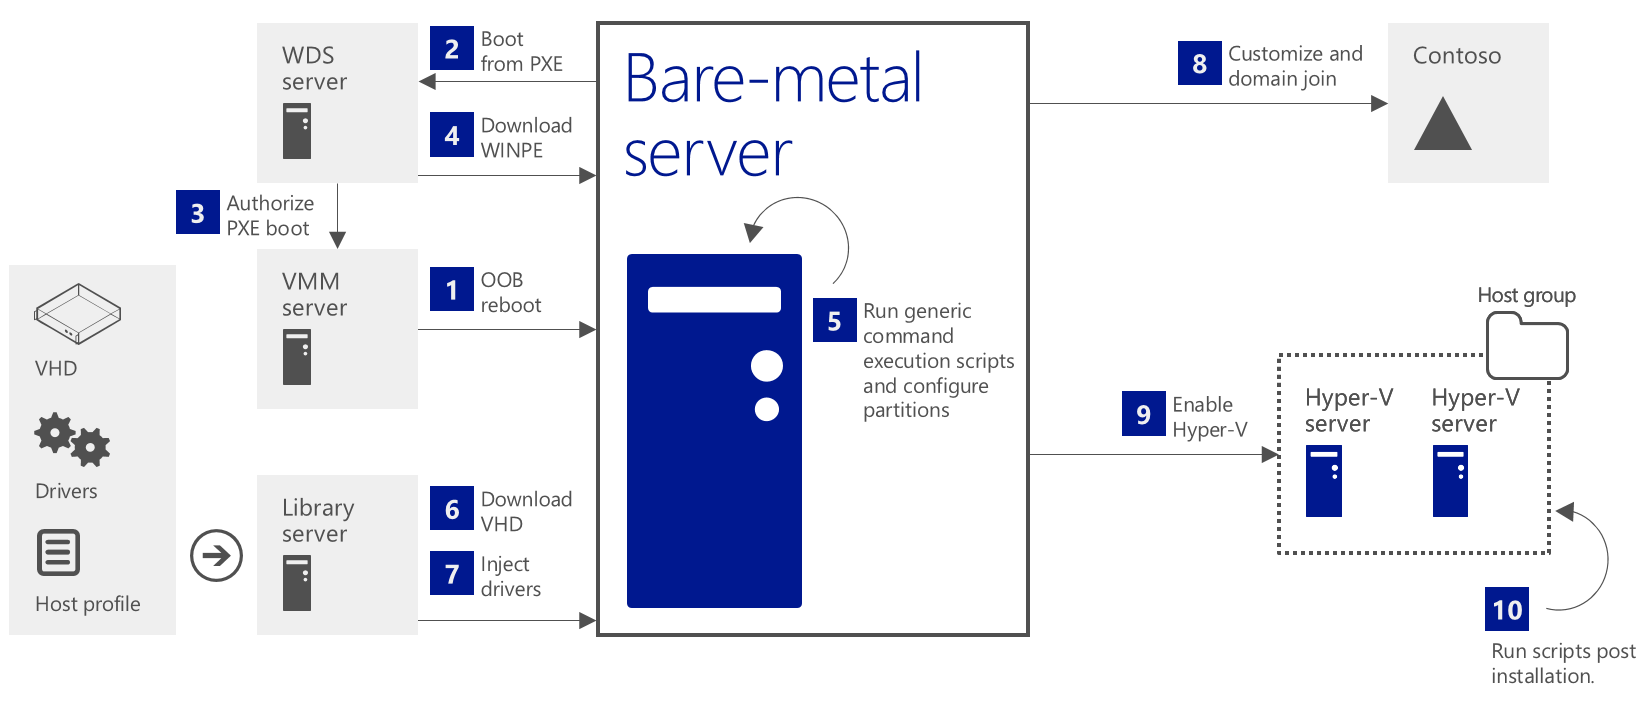 Figure 10: Virtual Machine Manager supports fully automated build of bare metal servers for fast large scale deployment High availability is critical to application owners and their end users.